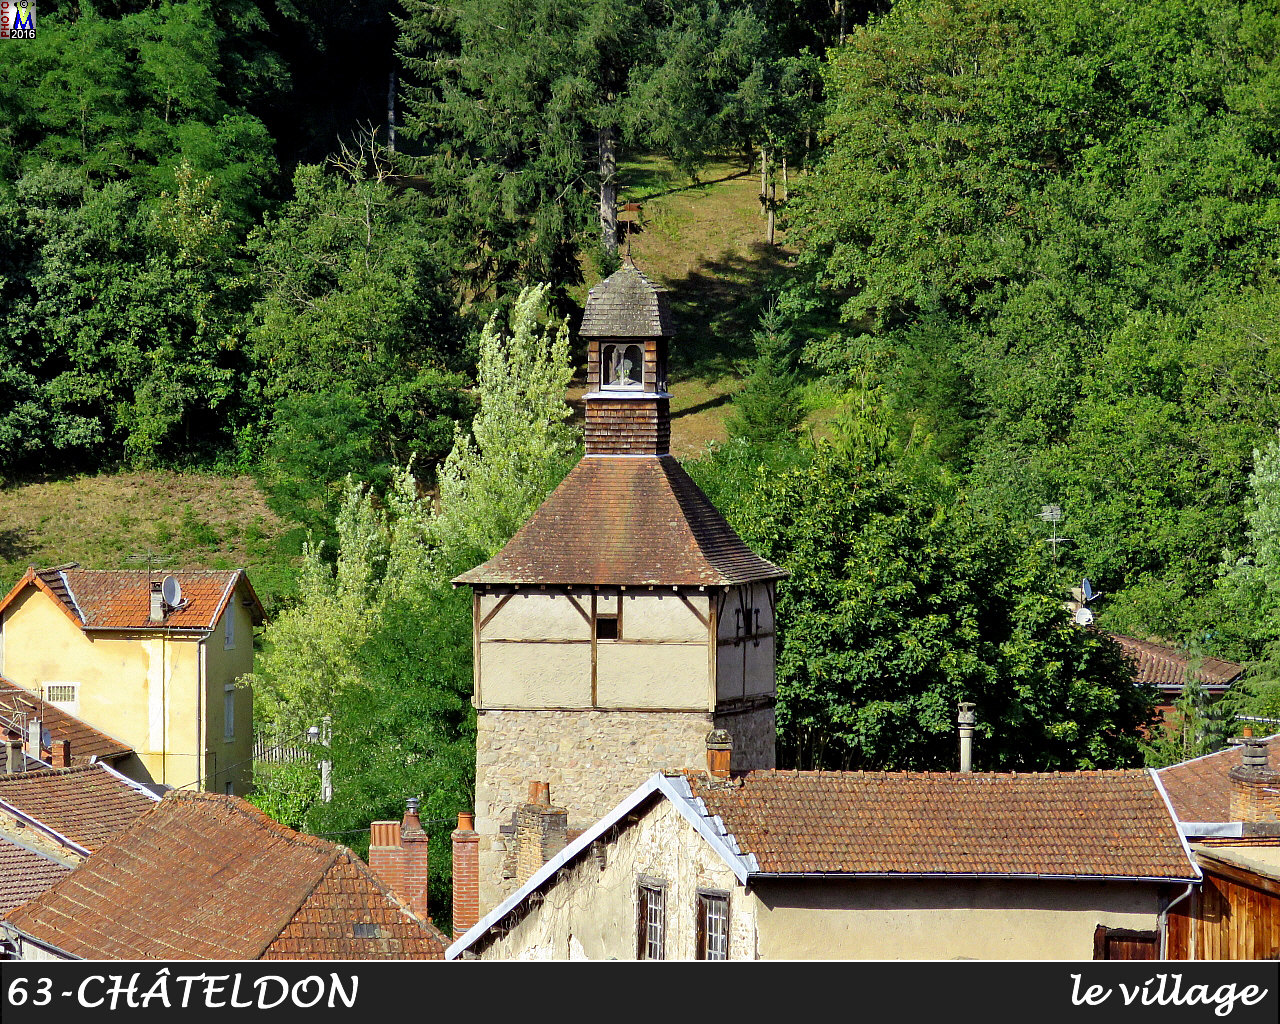 63CHATELDON_village_102.jpg